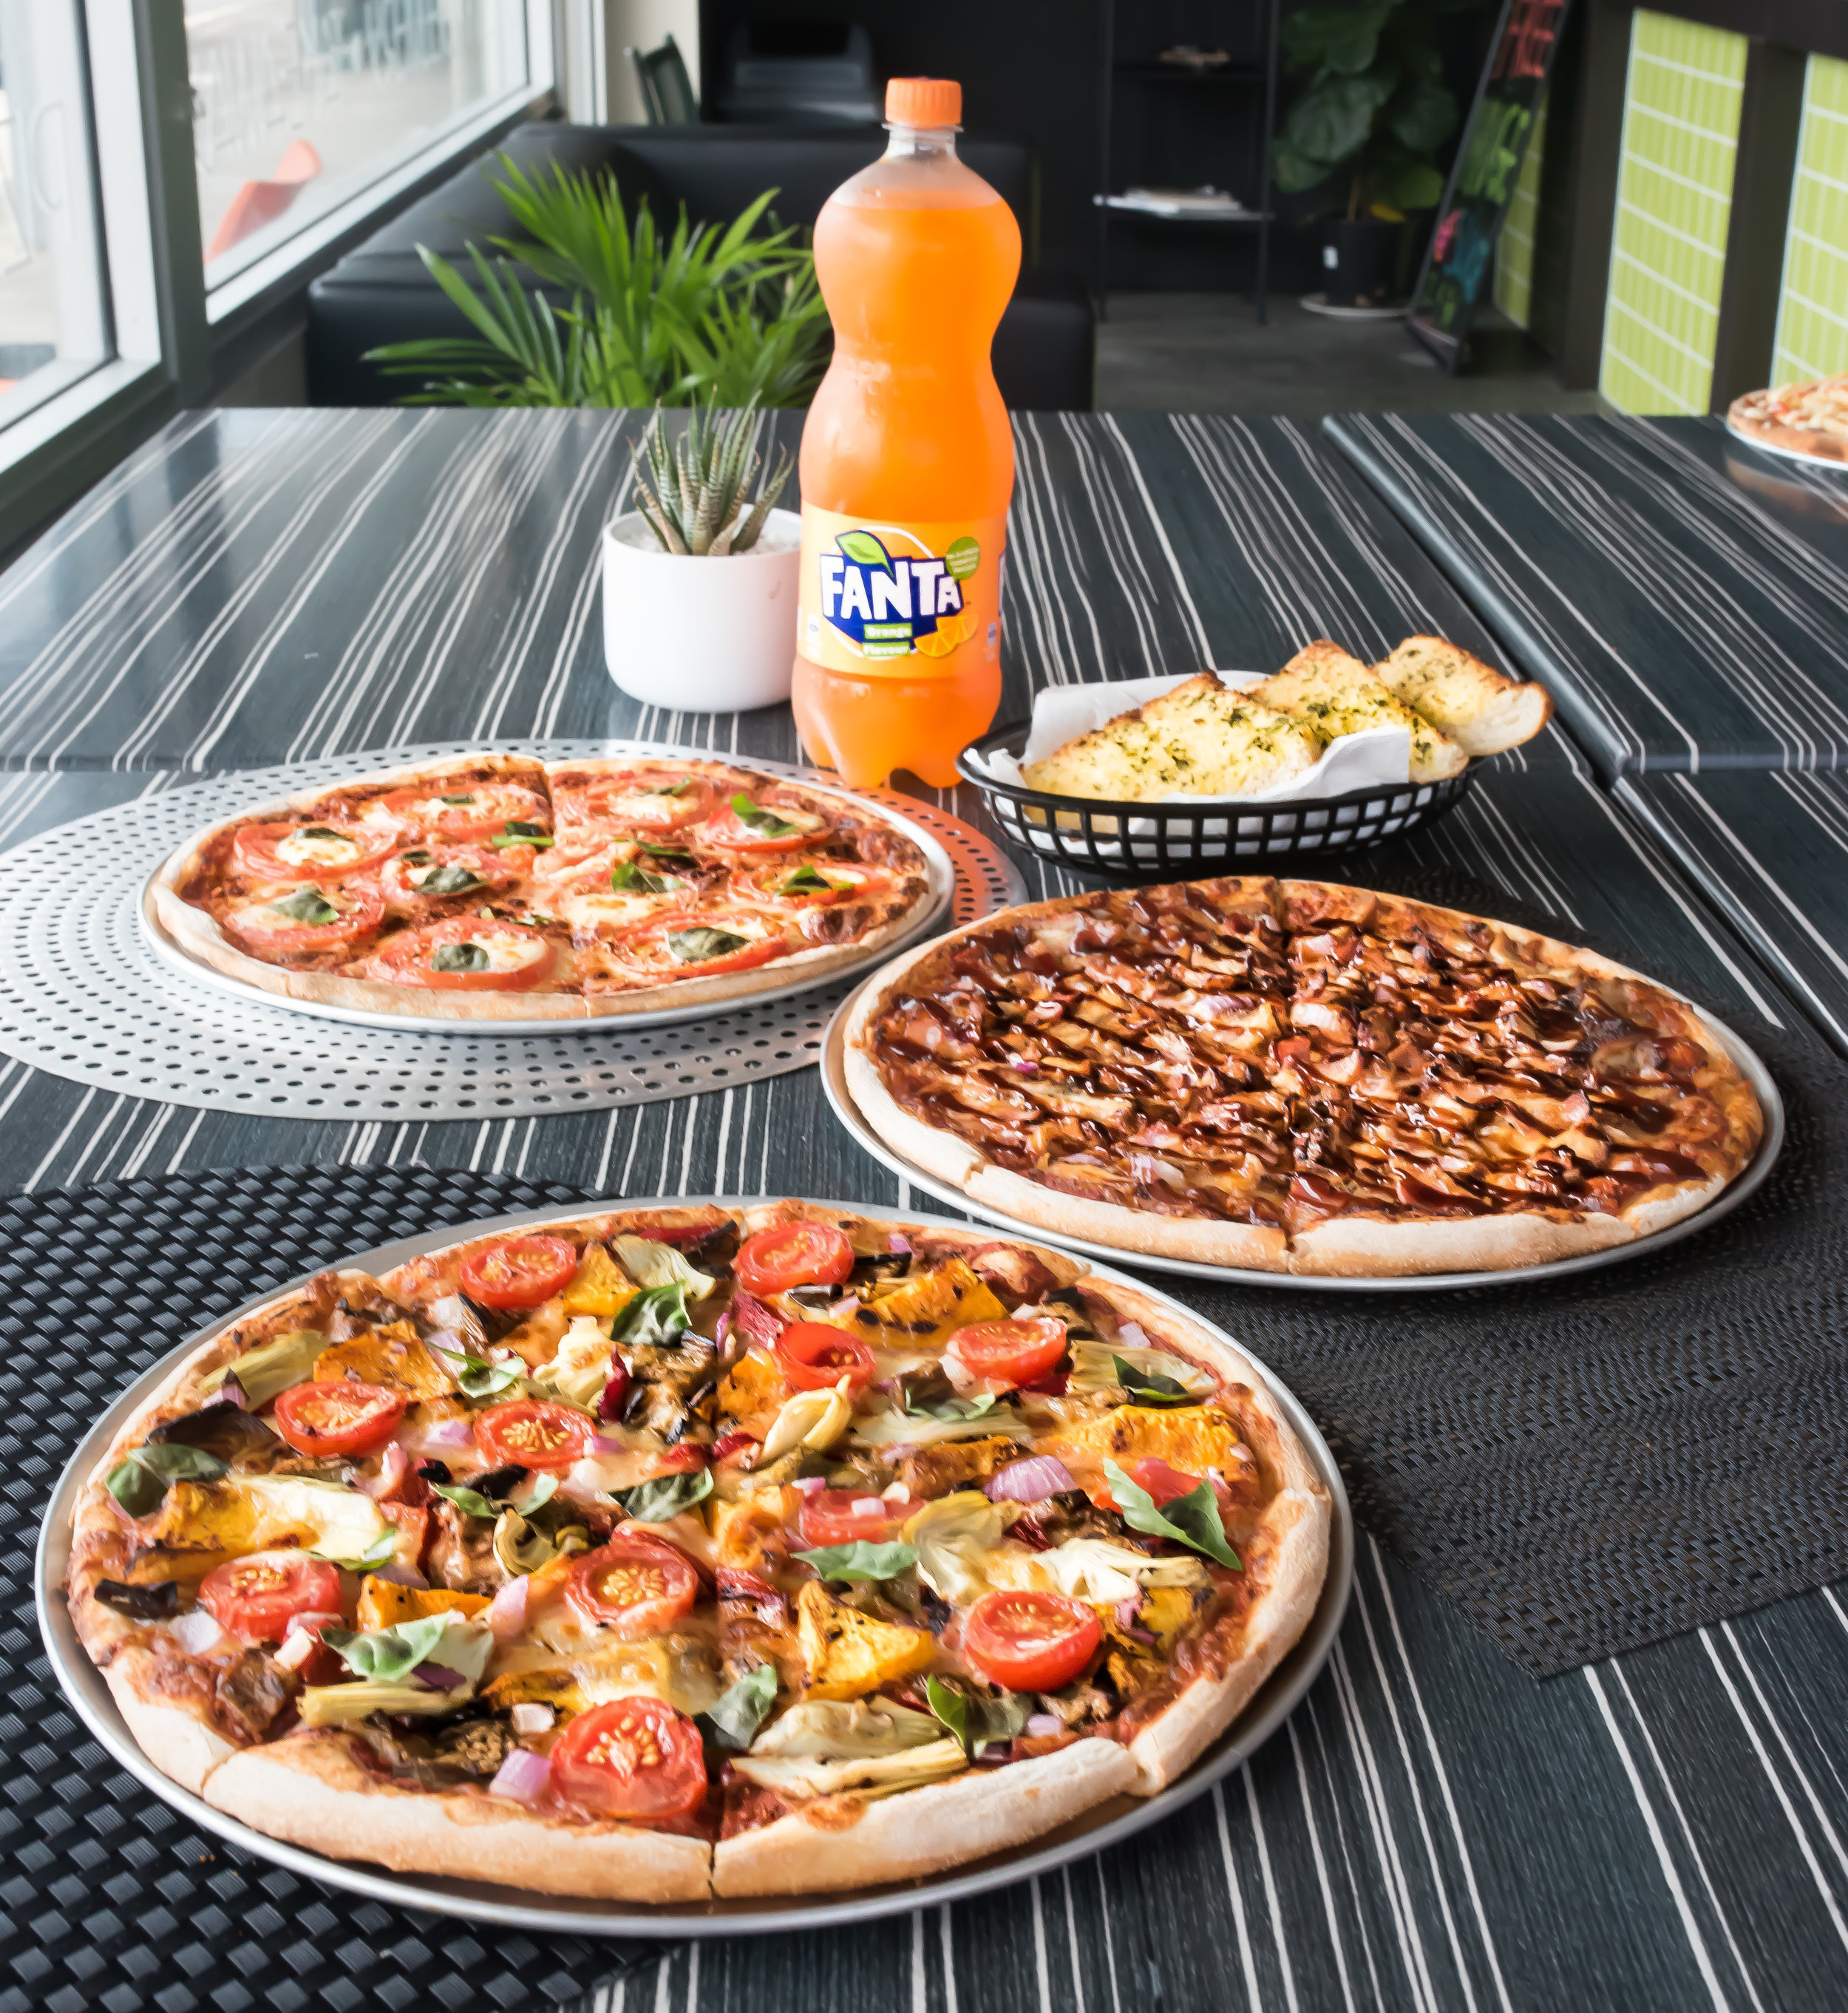 Order any 3 Large Pizzas plus a Garlic Bread...get a free drink!